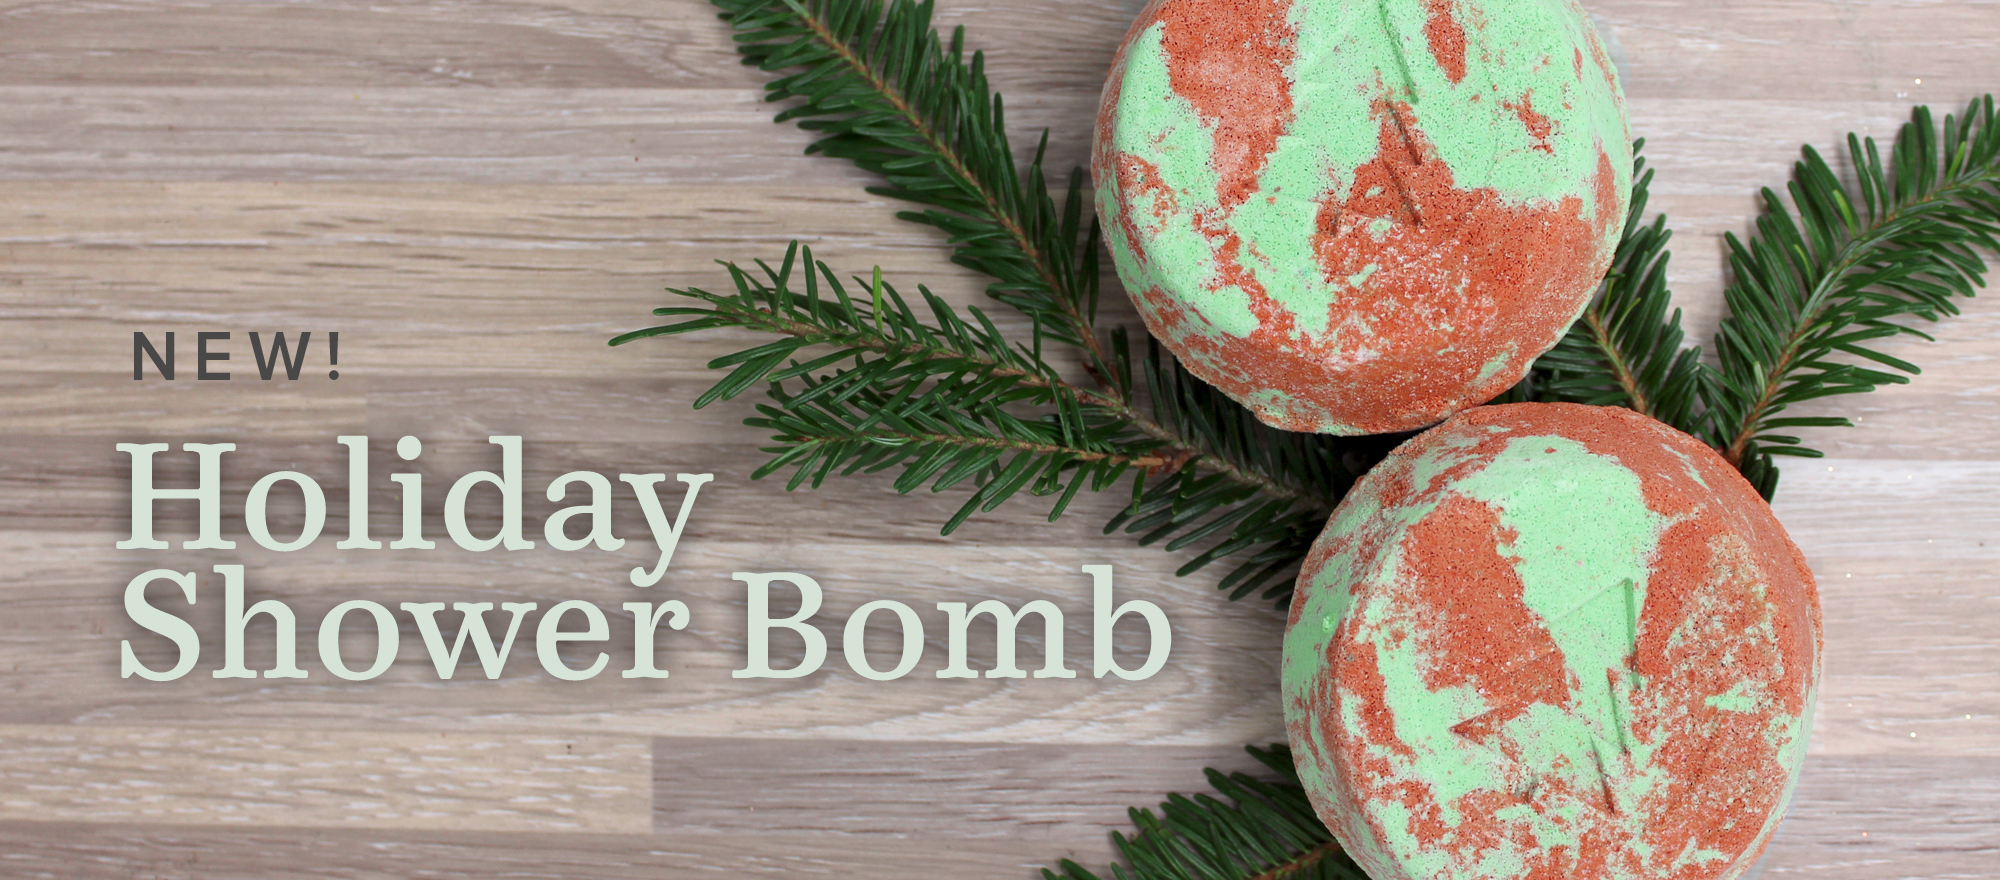 NEW! Holiday Shower Bomb